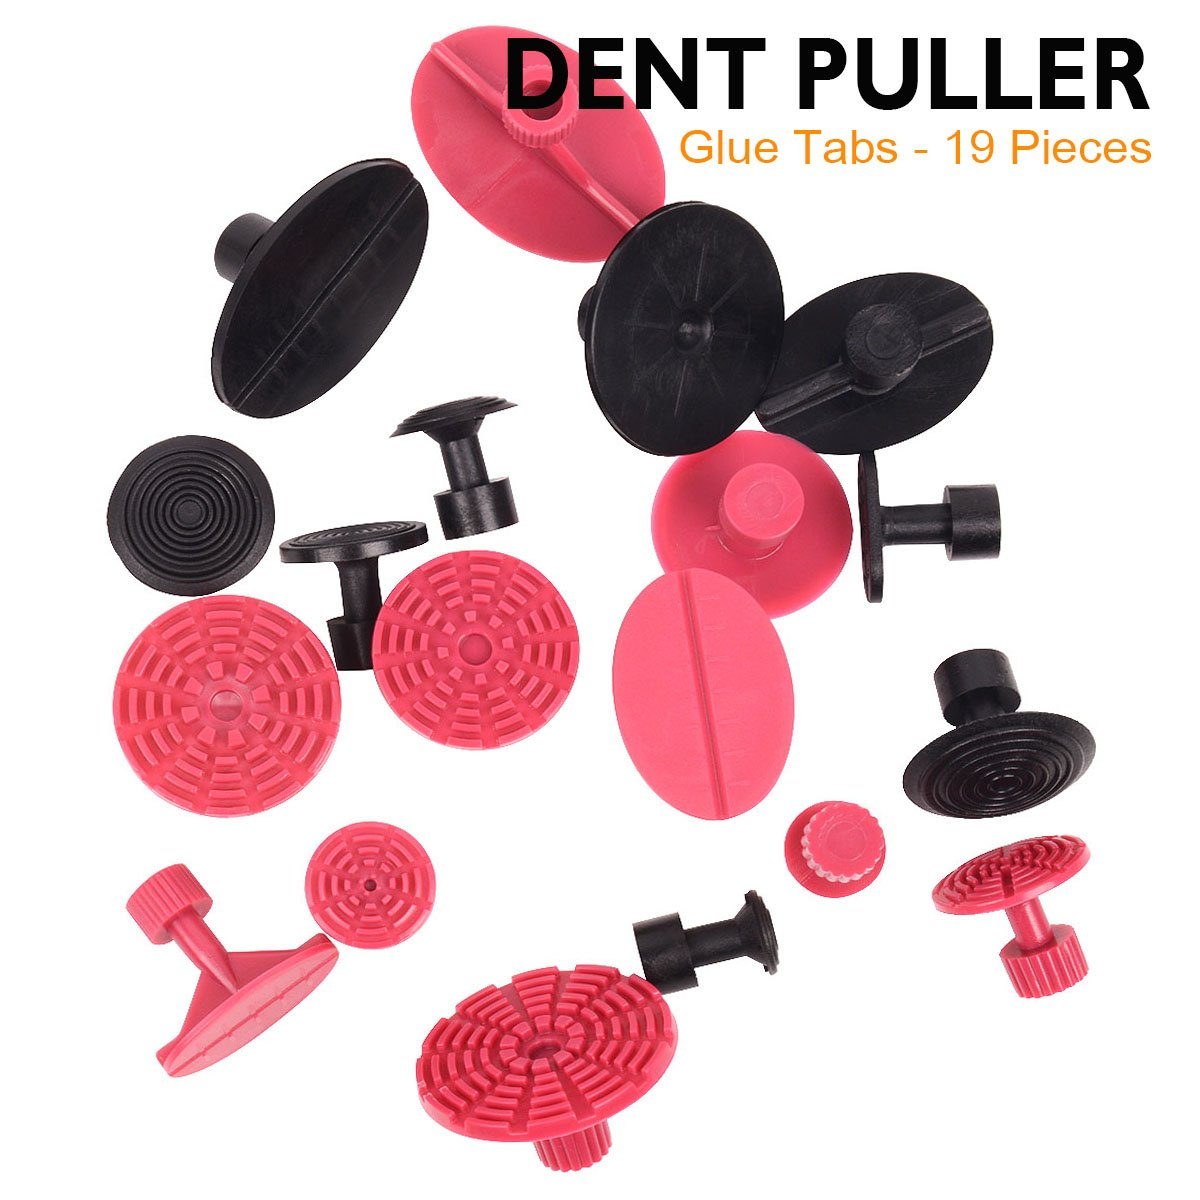 WHDZ Car Dent Repair Tools Dent Puller Paintless Removal Kit Black Dent Lifter with 19pcs Dent Removal Pulling Tabs Suction Cup Plate Pro Glue Sticks for Vehicle SUV Car Auto Body Hail Damage Remover by WHDZ (Image #5)